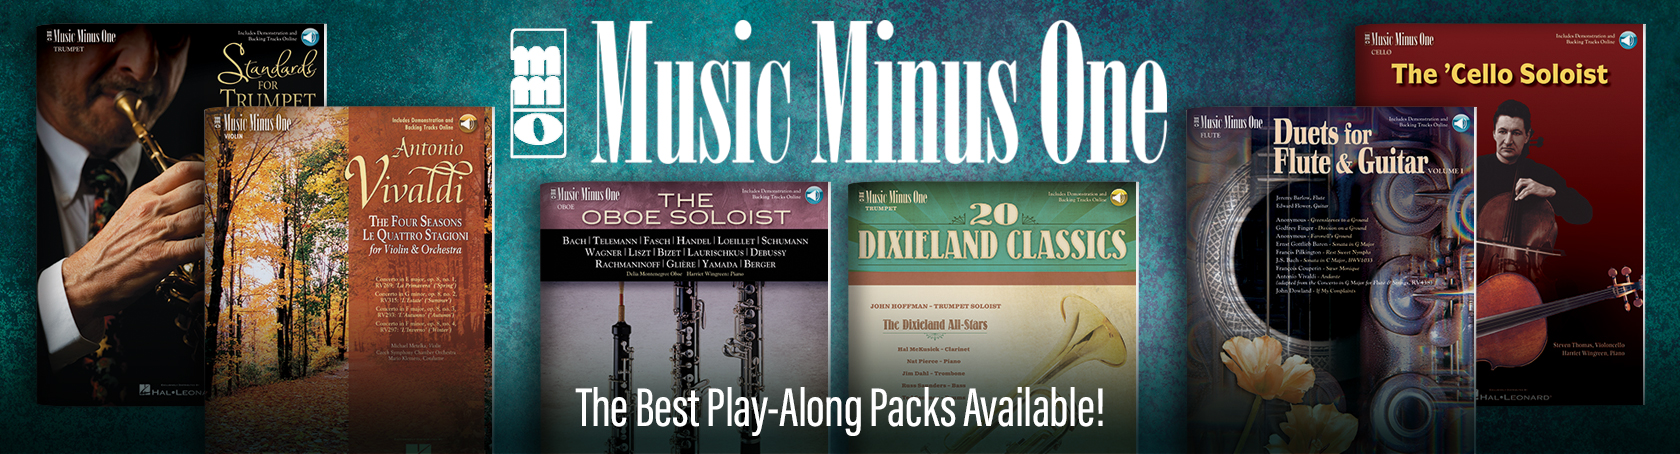 Music Minus One - The Best Play-Along Packs Available